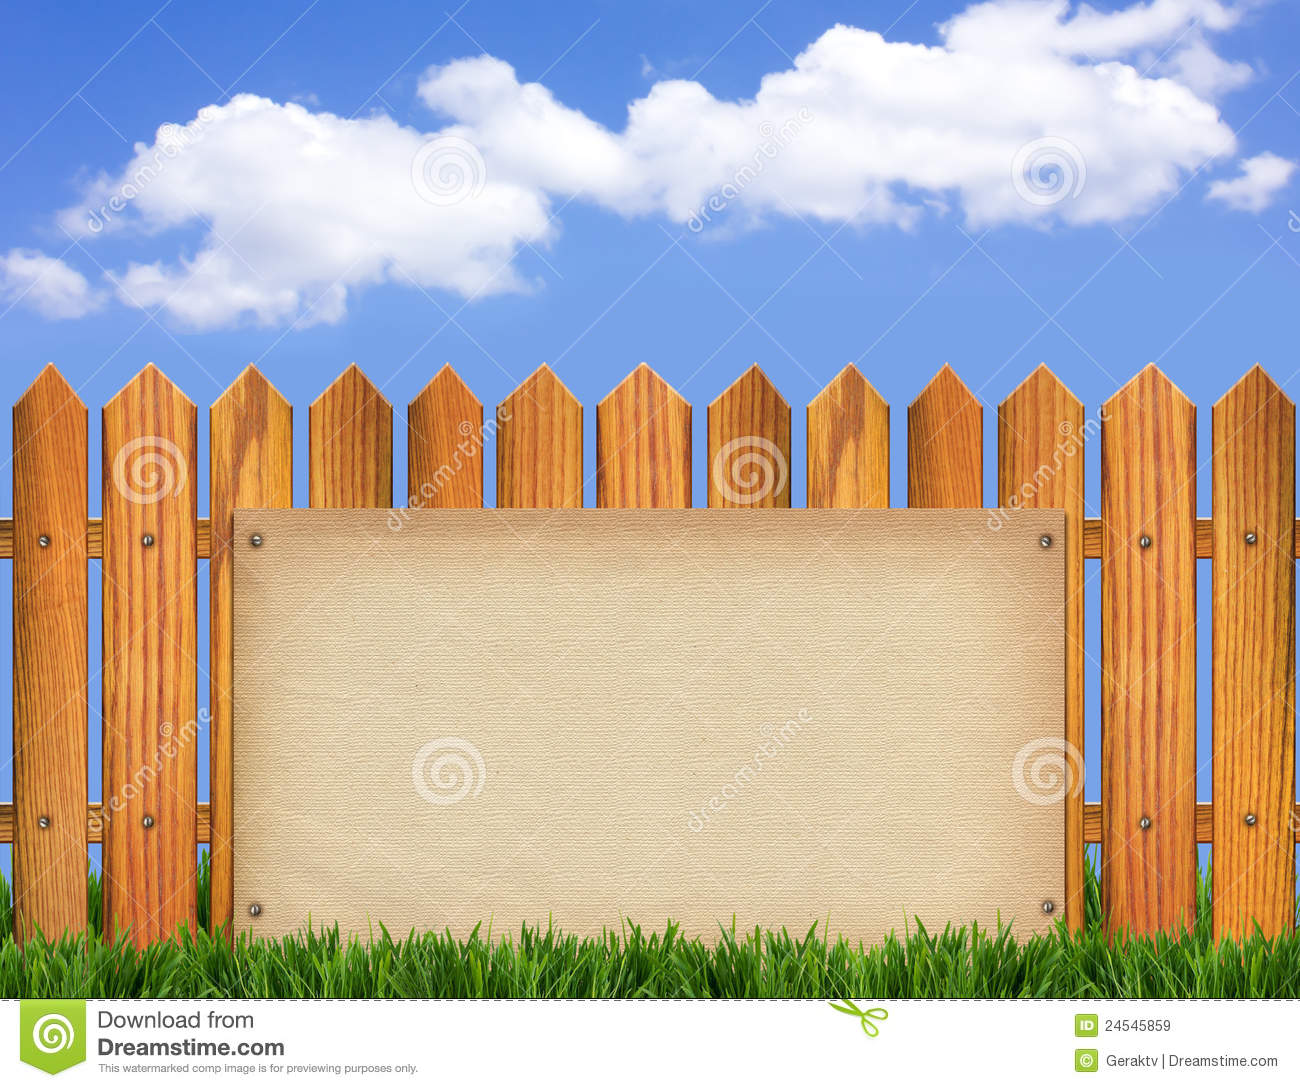 Wooden Fences Wall Paper